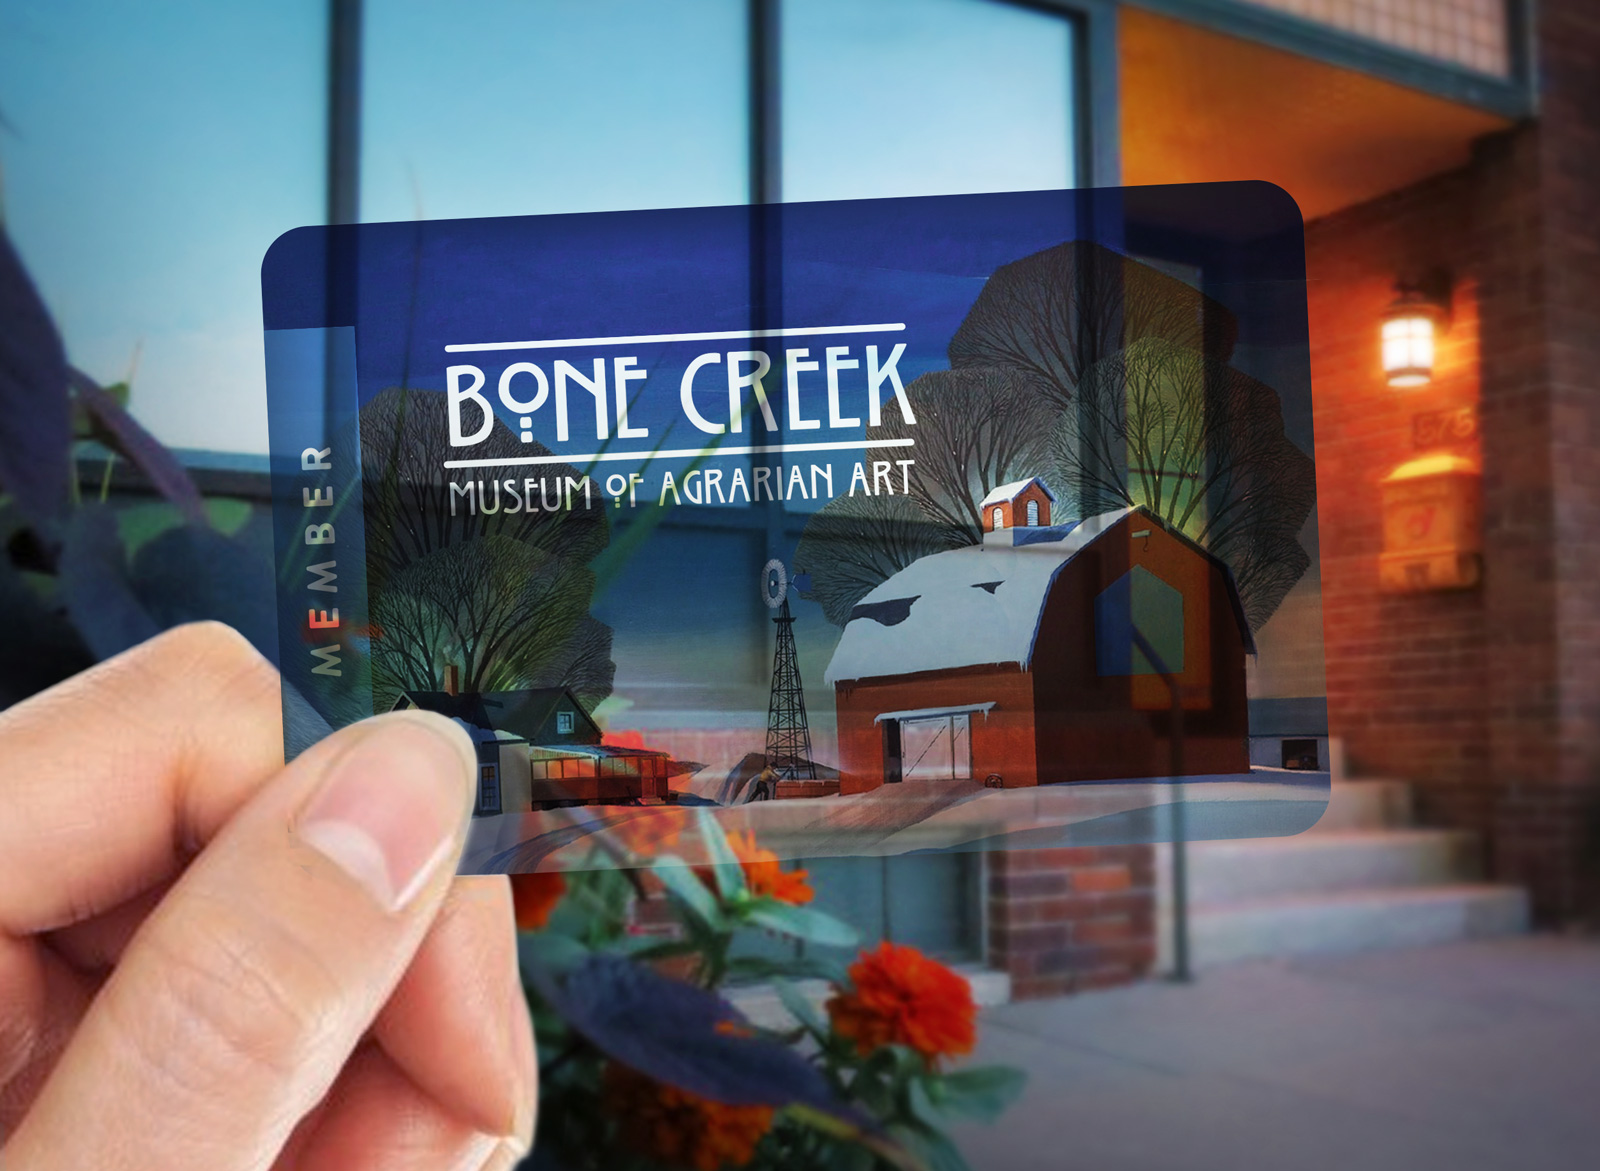 Bone-Creek-Museum-membership-card-exterior